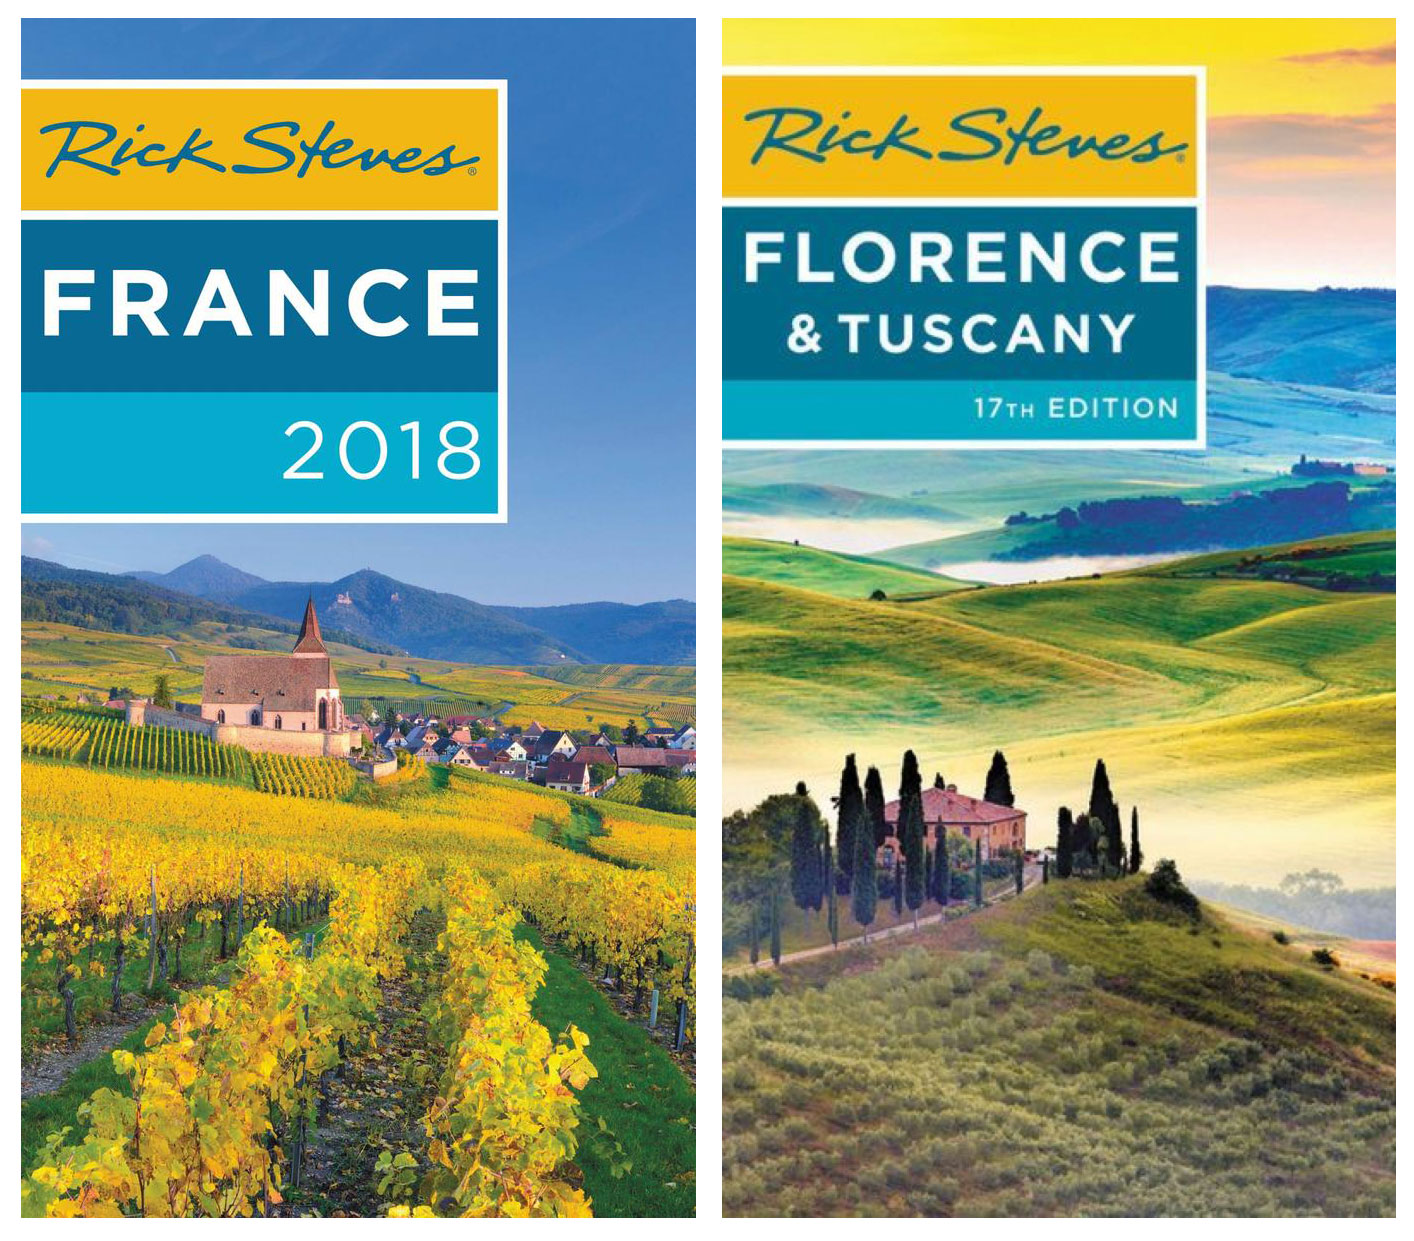 France_Tuscany_covers_APF2